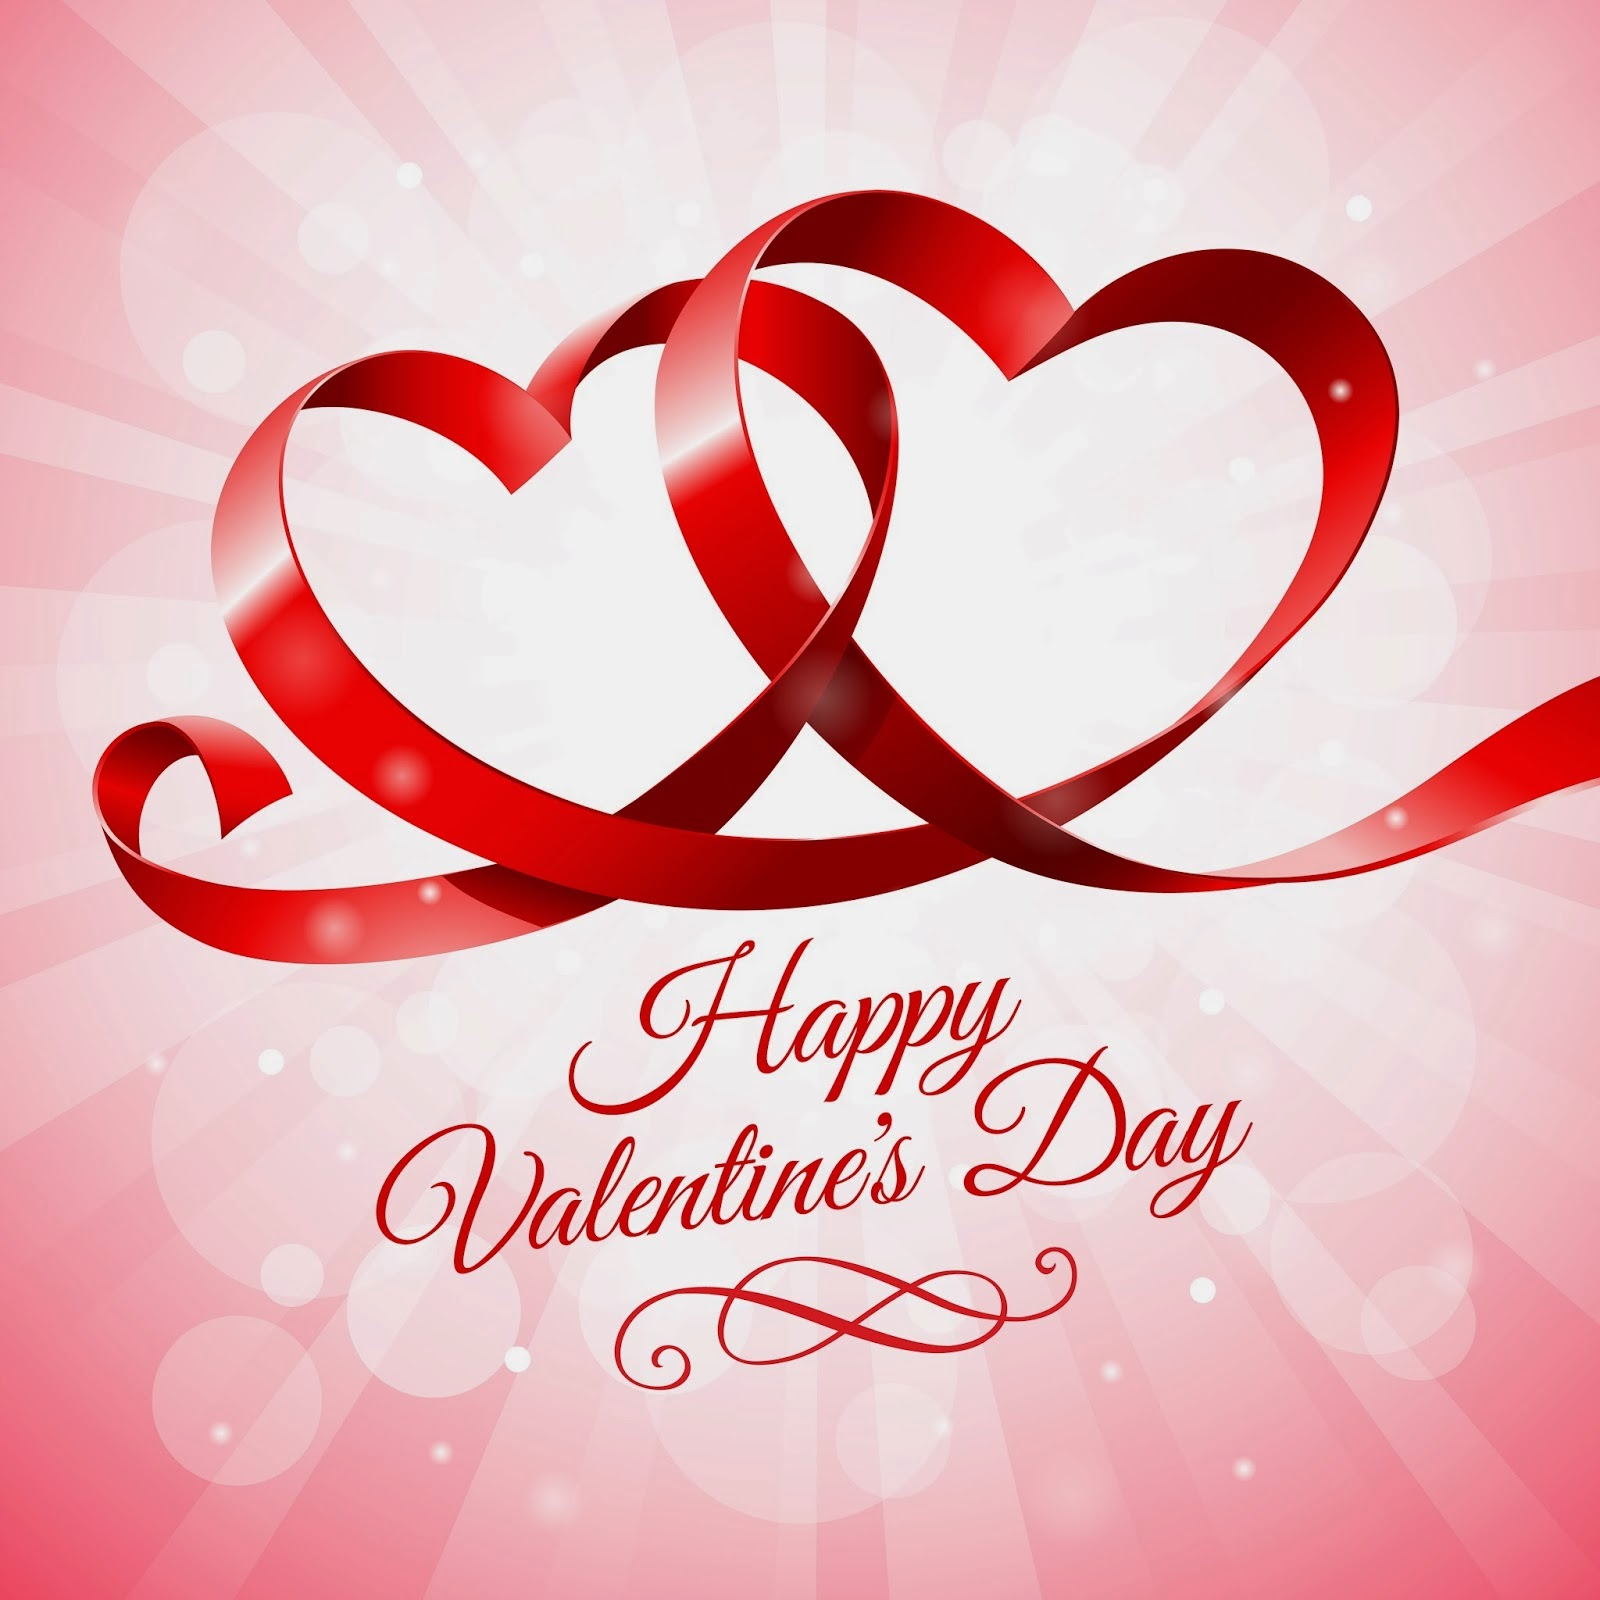 Valentines Day Wallpaper: Happy Valentines Day 2015 HD Wallpapers